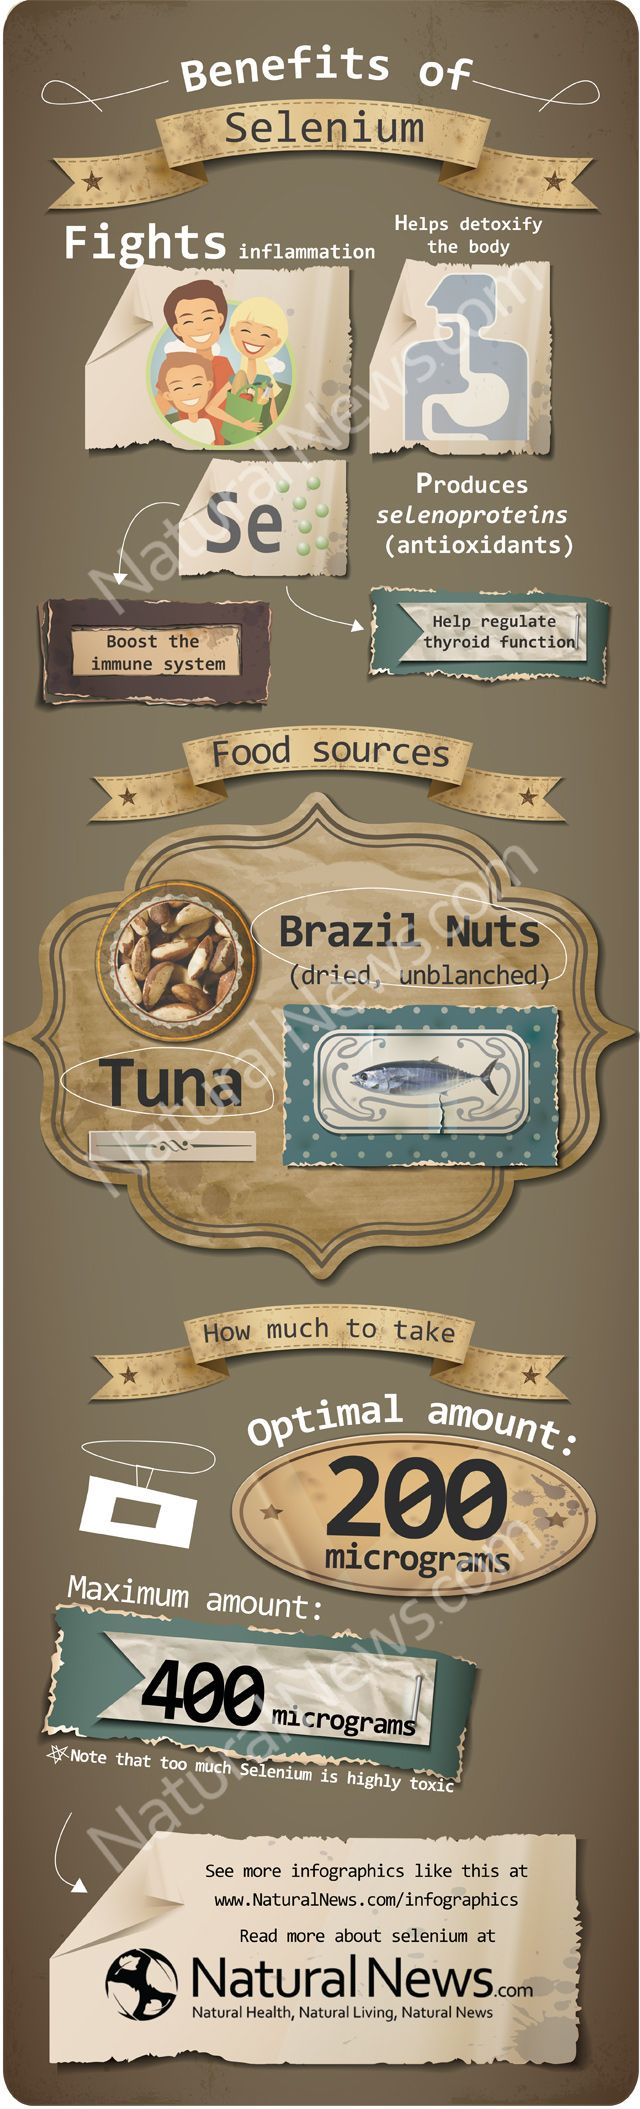 Fantastic infographic on selenium, its health benefits, the best food sources and more.